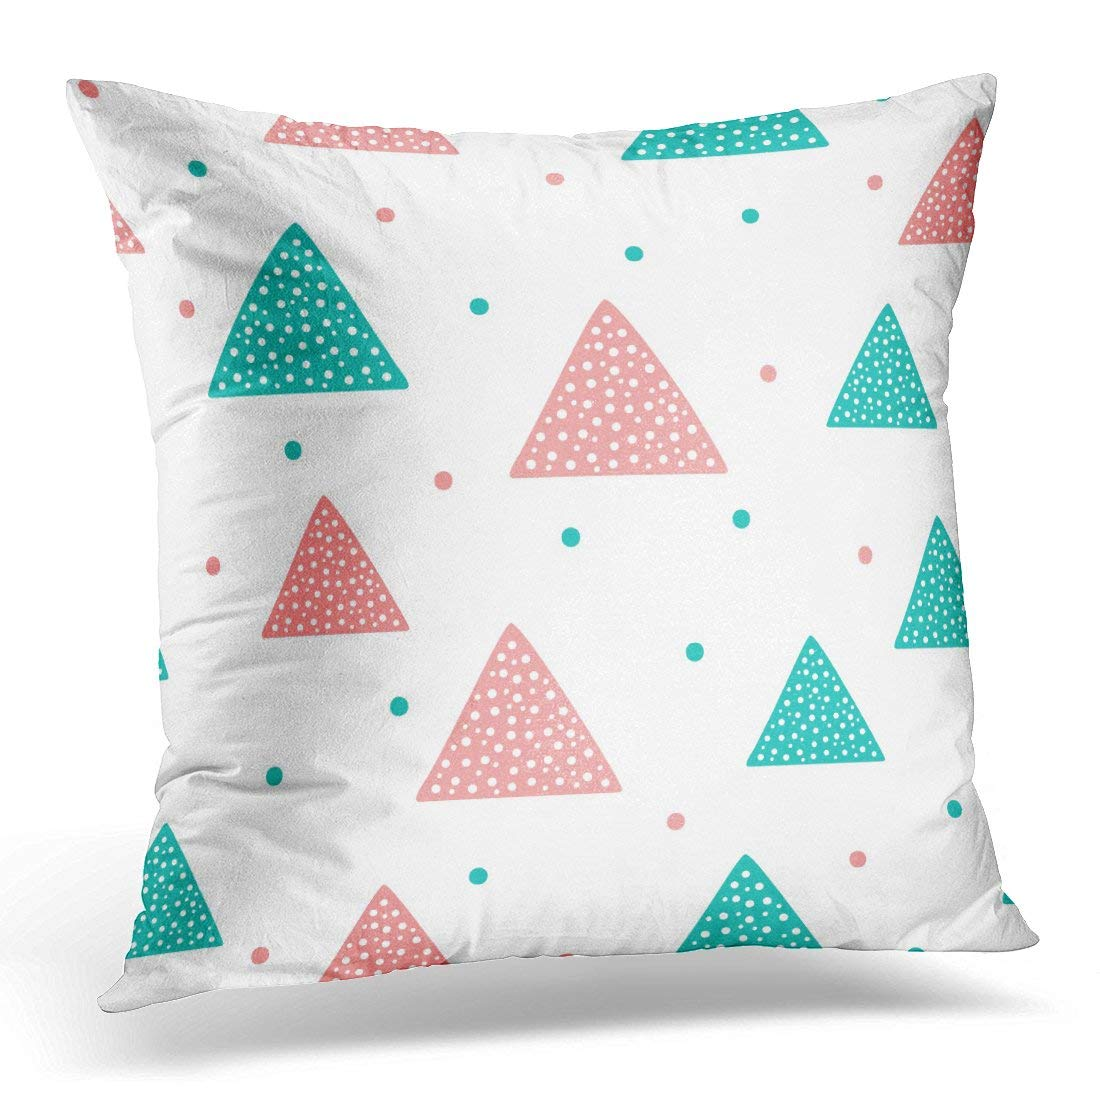 ARHOME Blue Abstract Cute Geometric Triangles and Round Spots for Children Pink Baby Pillow Case Pillow Cover 20x20 inch